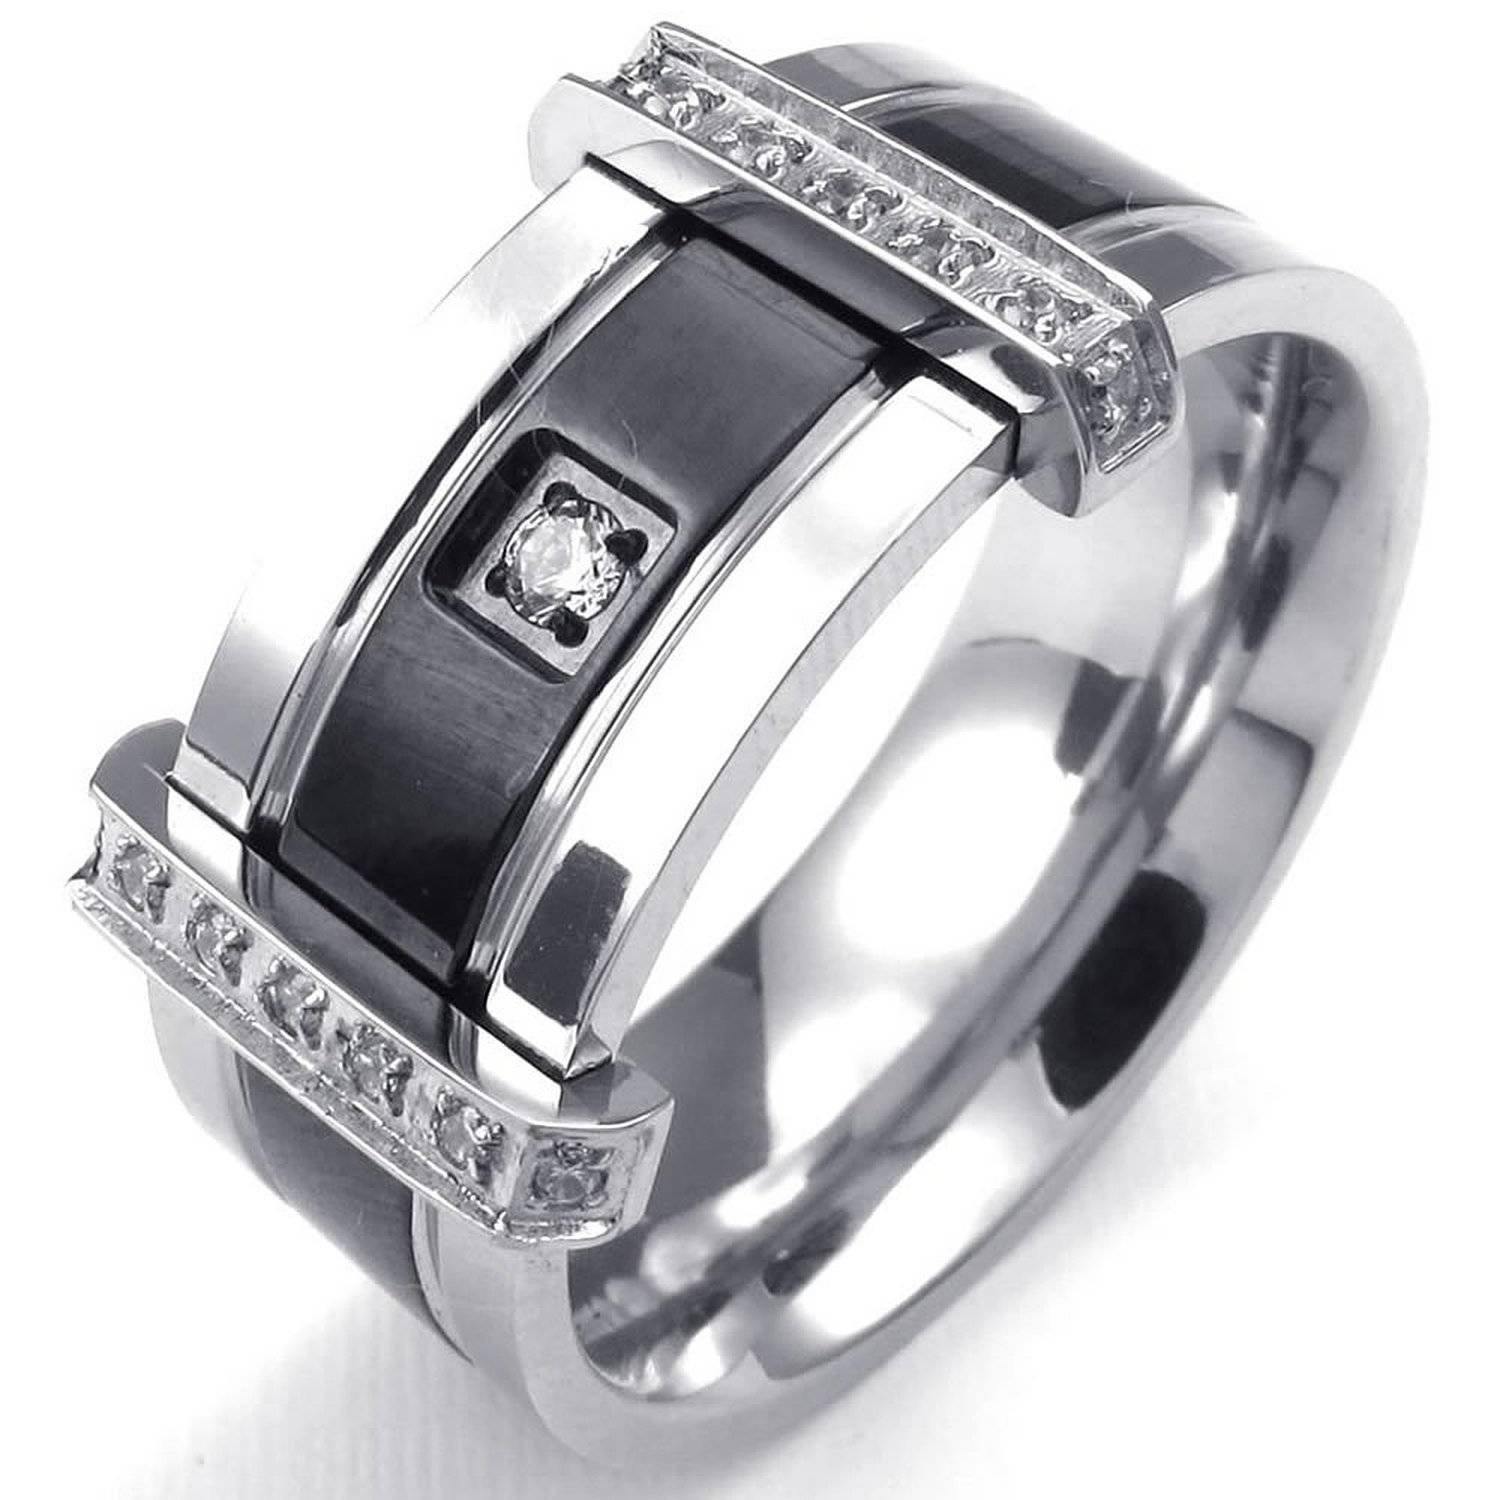 Mens Cubic Zirconia Diamond Rings | Wedding, Promise, Diamond Inside Men's Cubic Zirconia Wedding Bands (View 8 of 15)